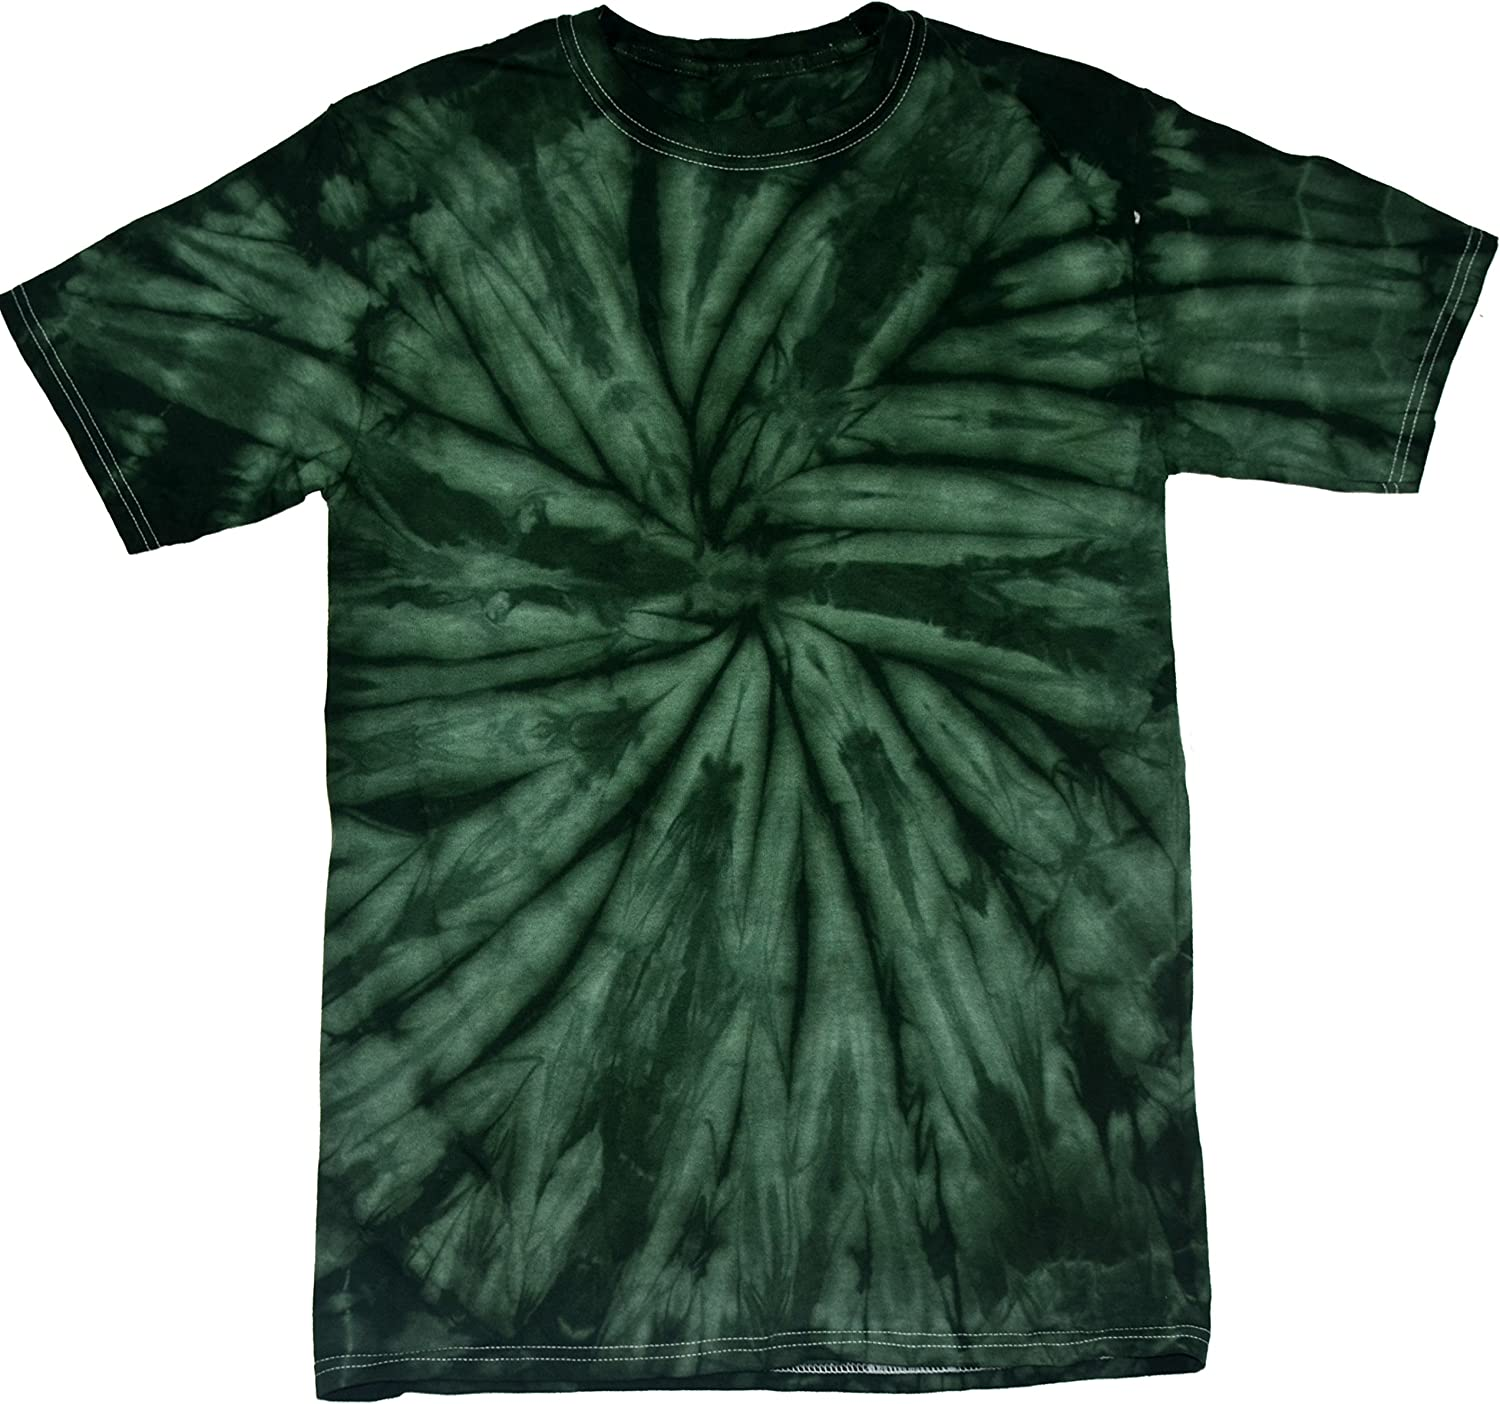 Colortone Youth /& Adult Spider Tie Dye T-Shirt